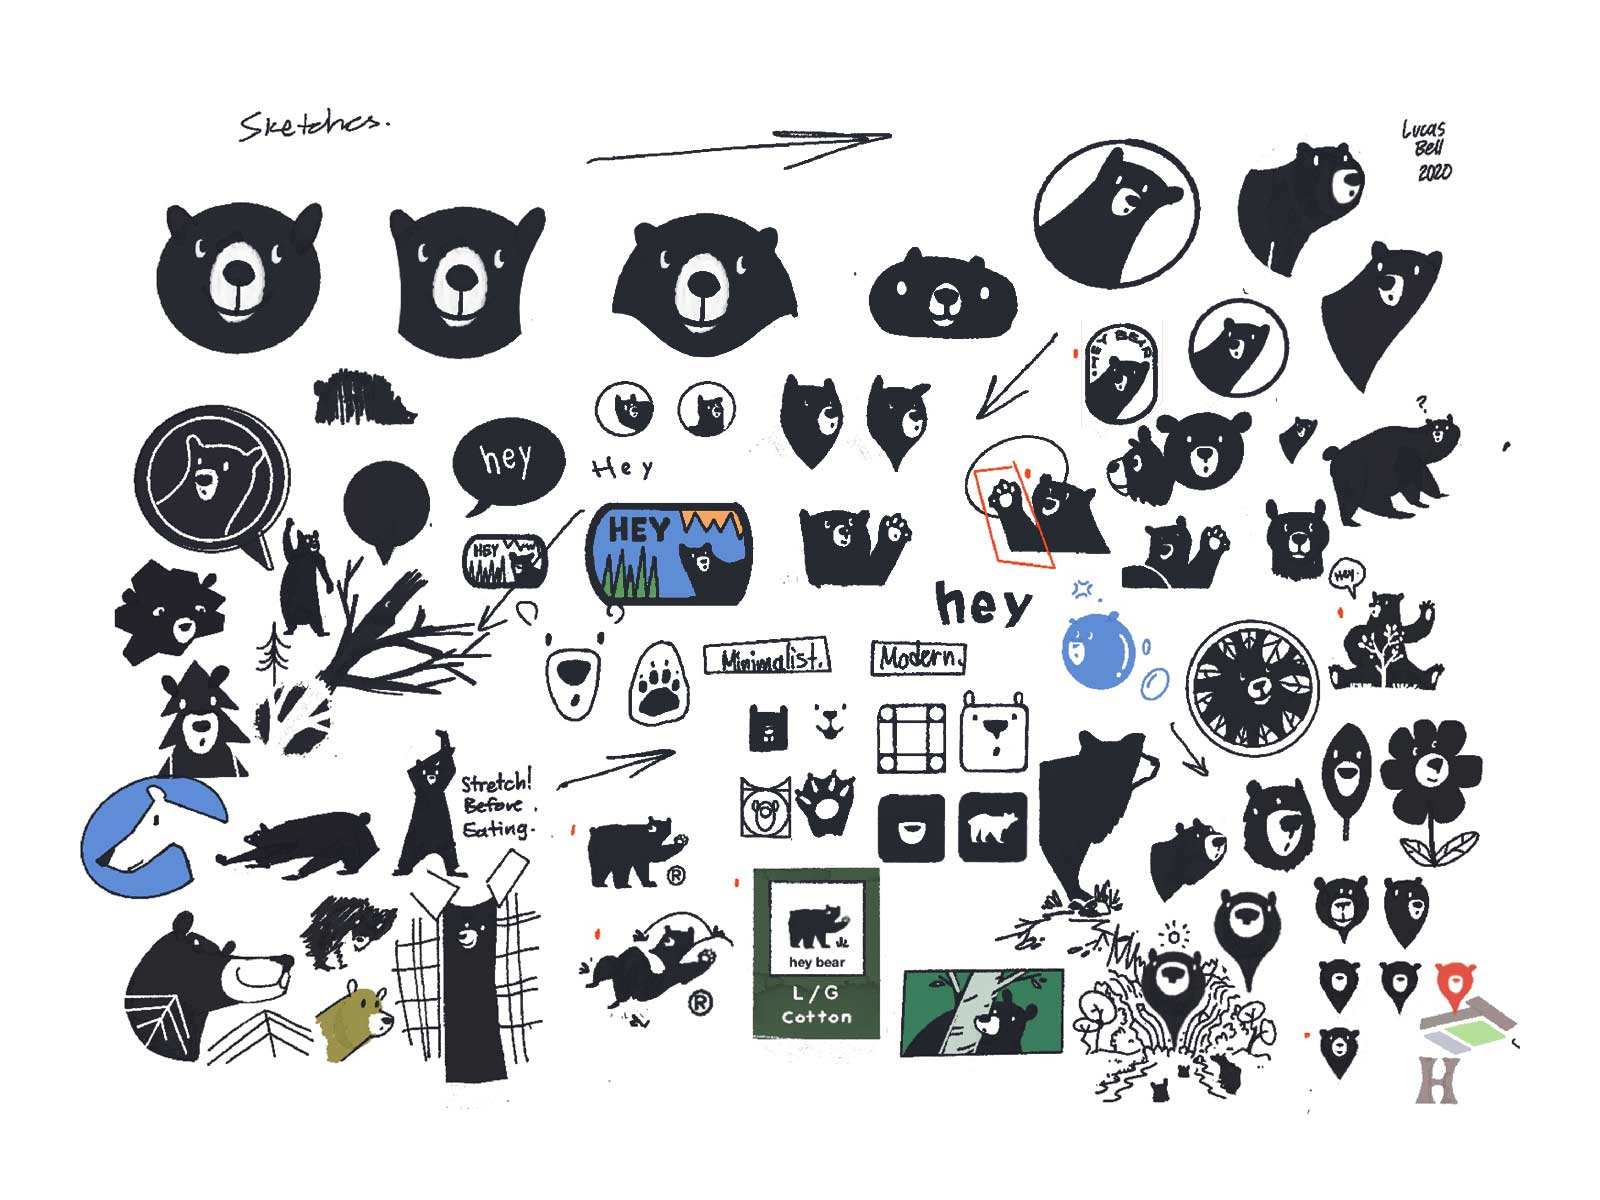 logo sketching for hey bear logo design project